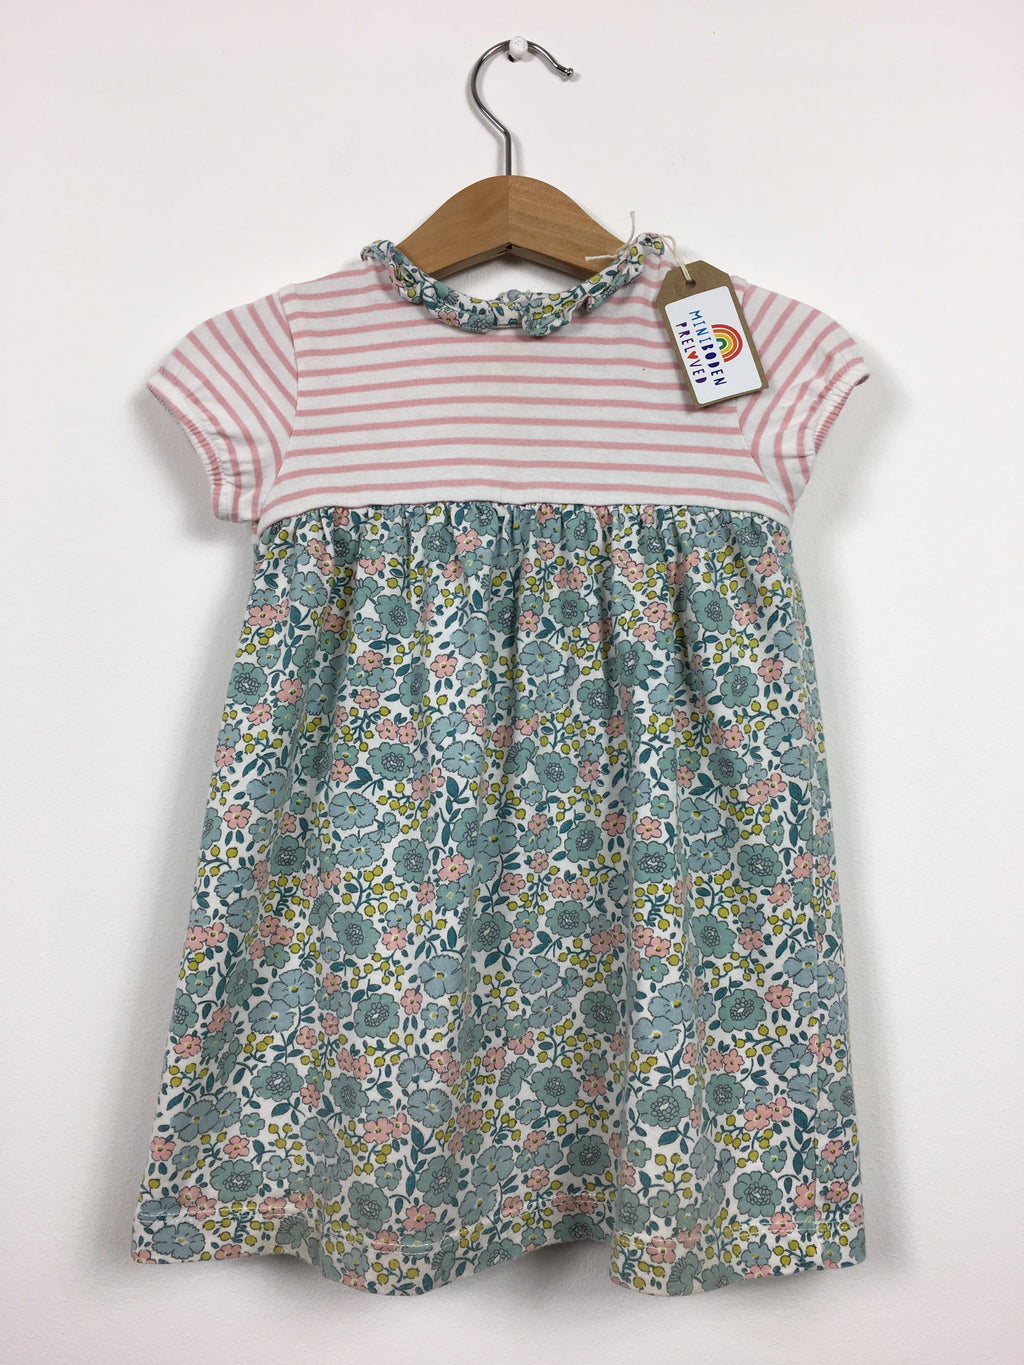 Floral & Stripes Dress with Pretty Collar (Age 12-18 Months)